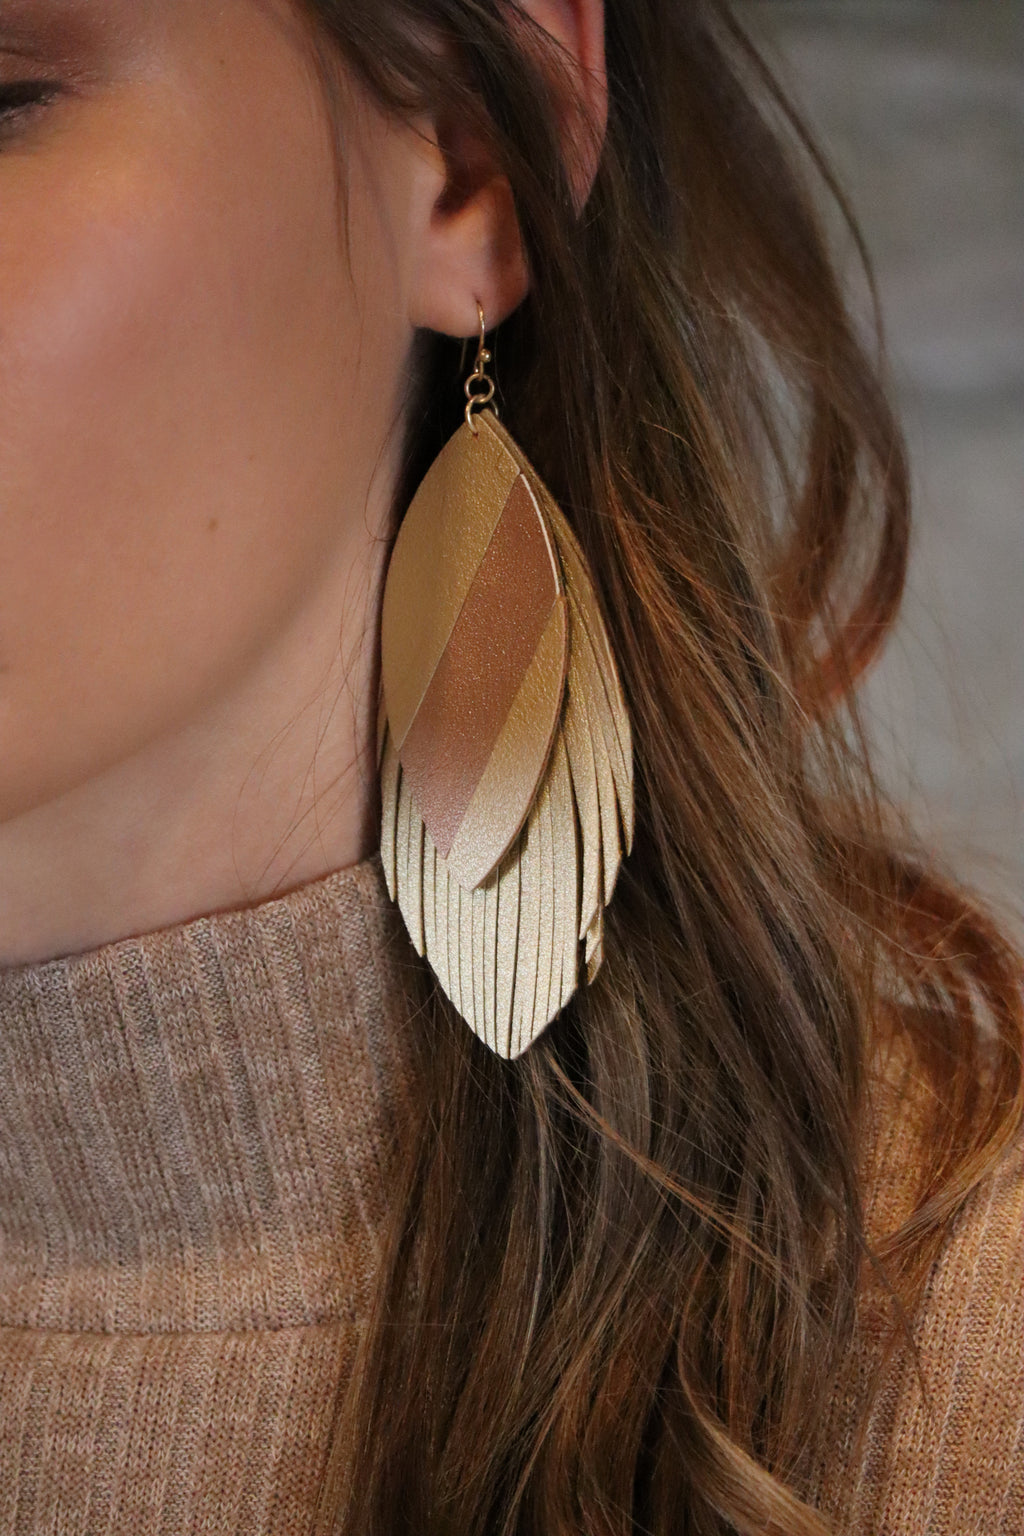 LAURA'S LAYERED FRINGE EARRINGS - GOLD/ROSE GOLD